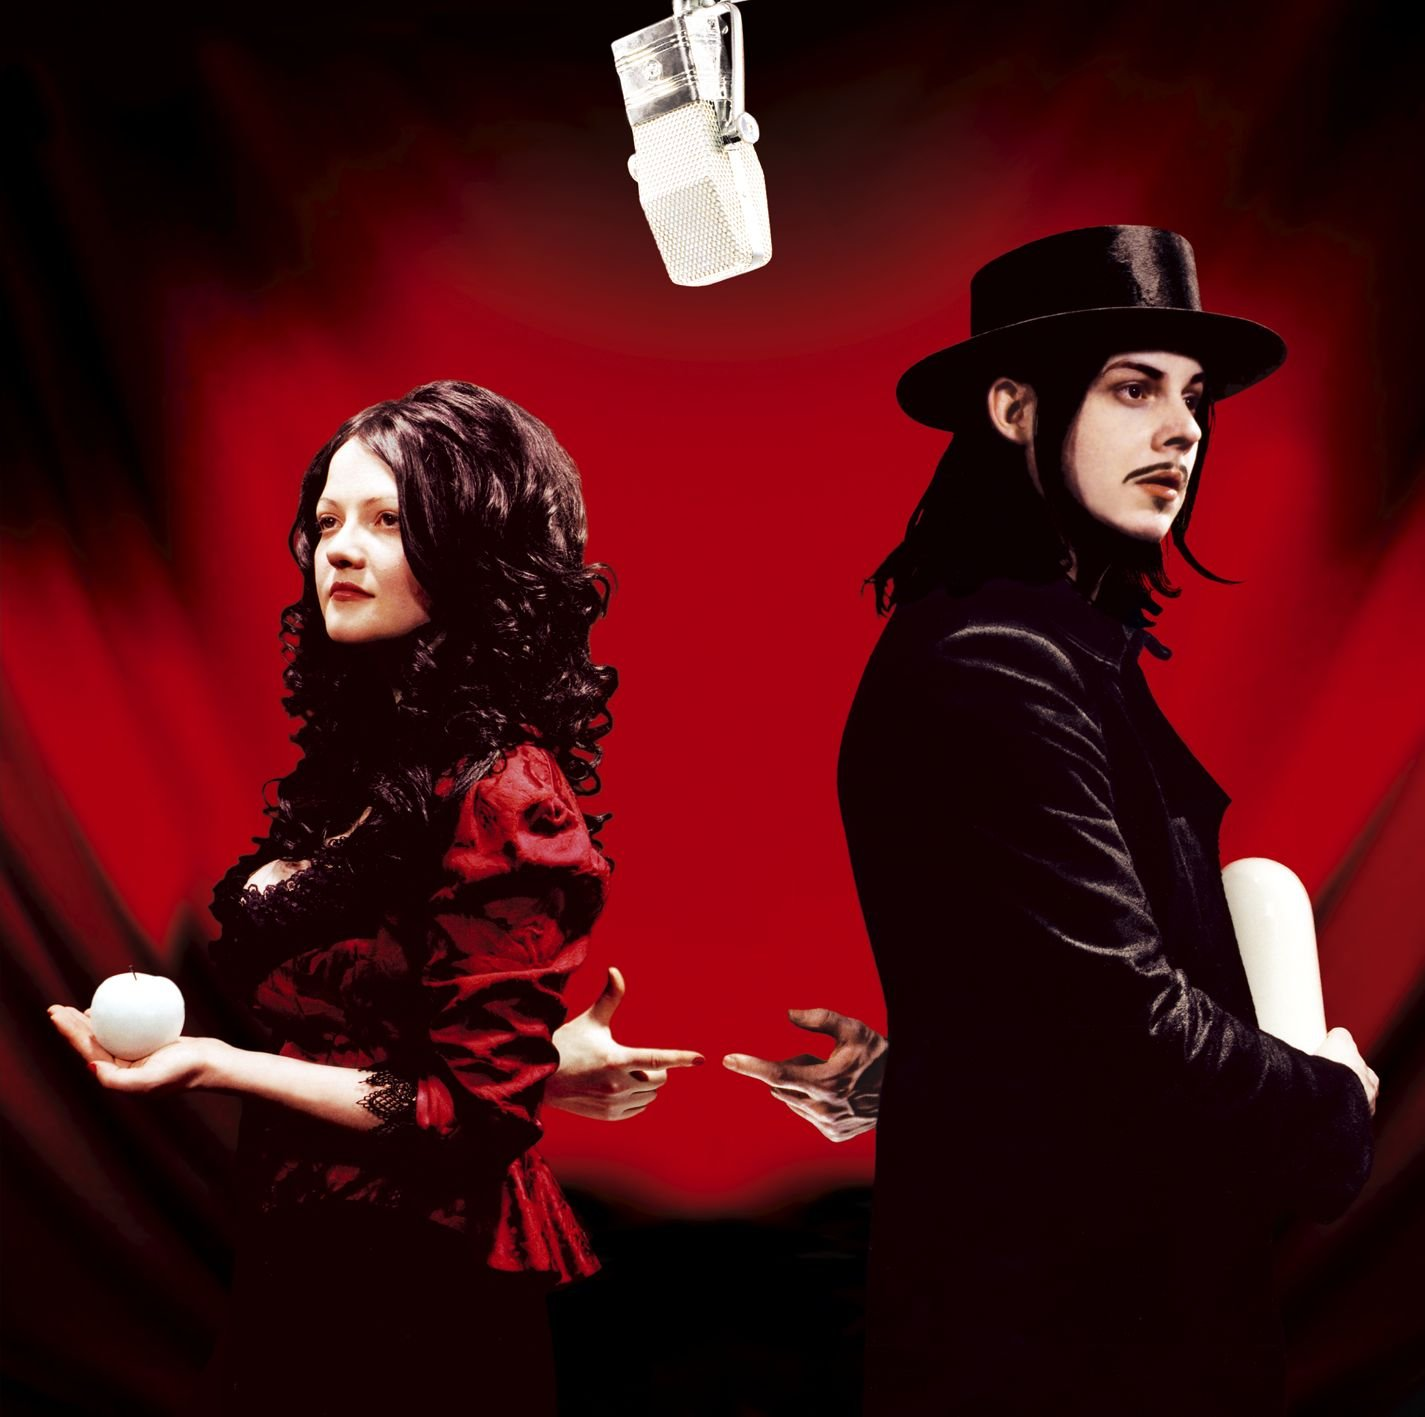 Get Behind Me Satan / The White Stripes